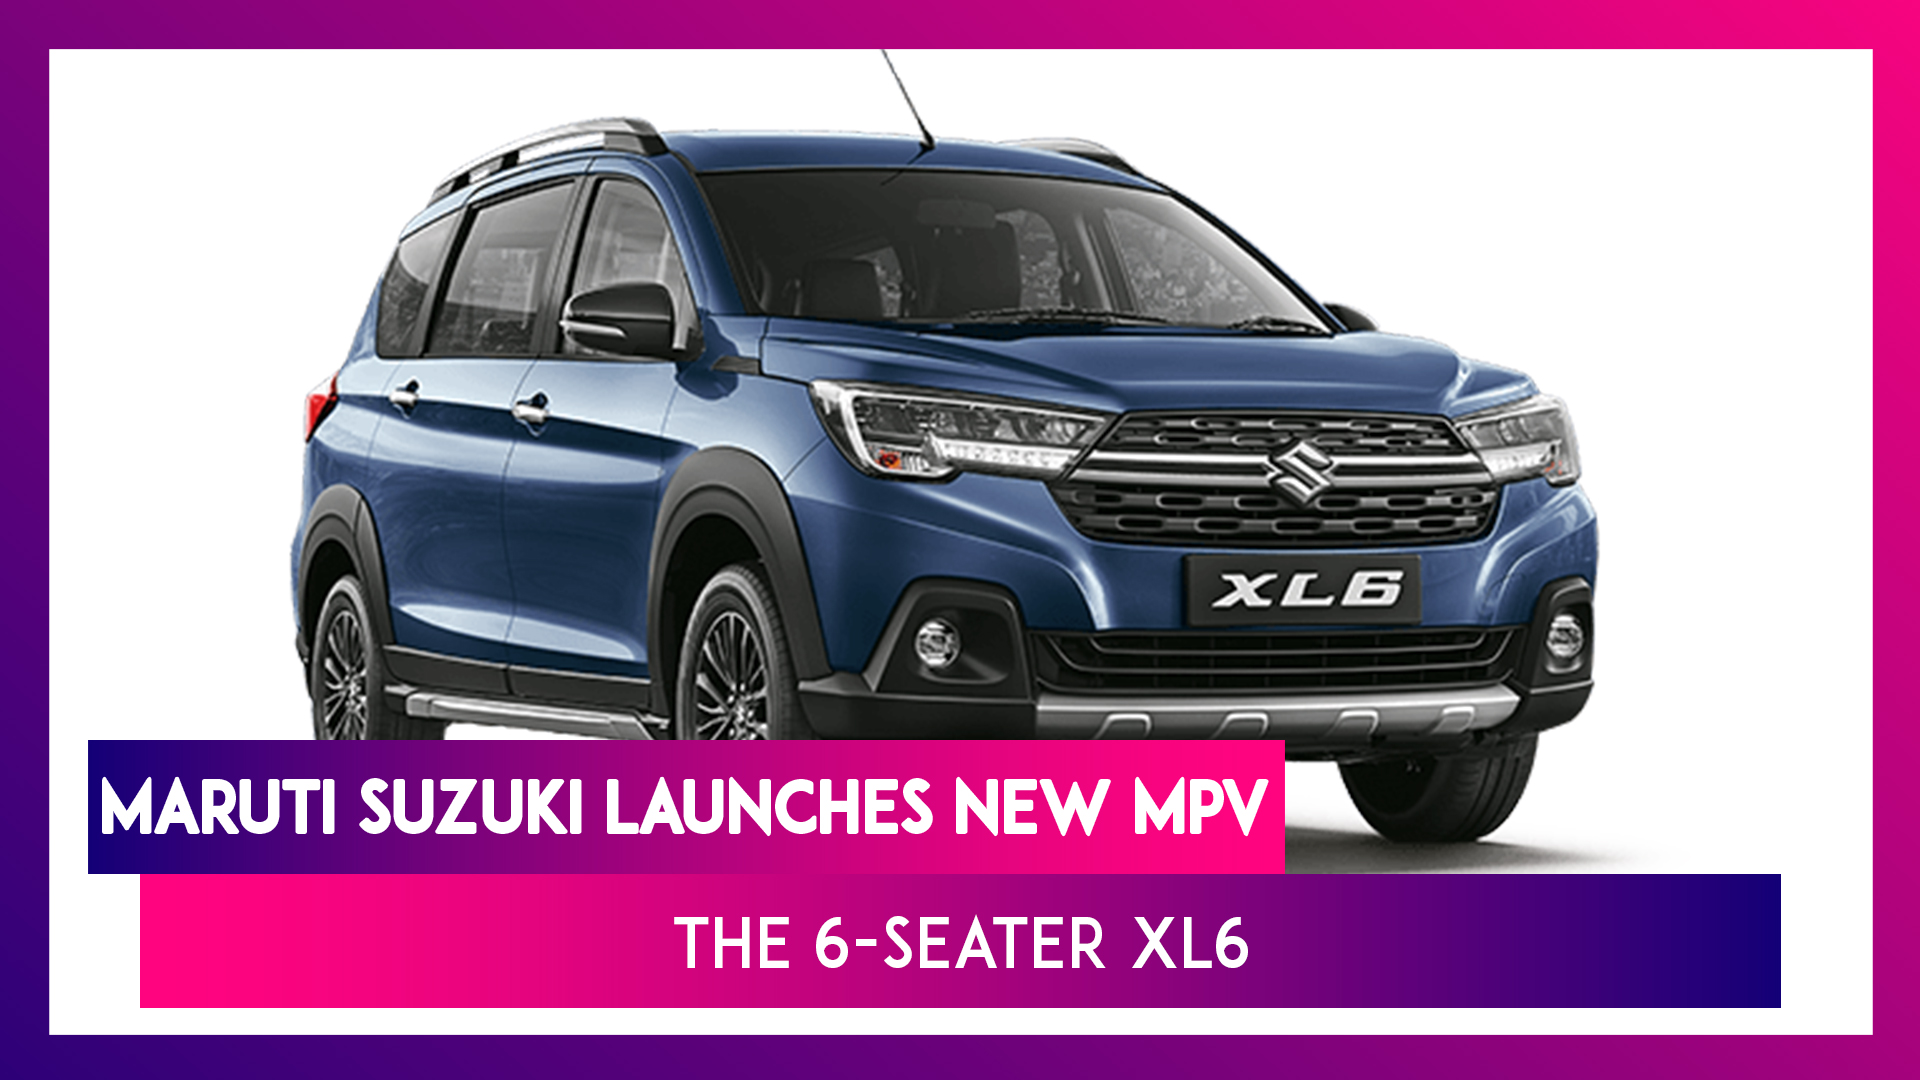 Maruti Suzuki Launches 6-Seater MPV XL6 Starting At Rs. 9.79 Lakh: Specifications & Highlights